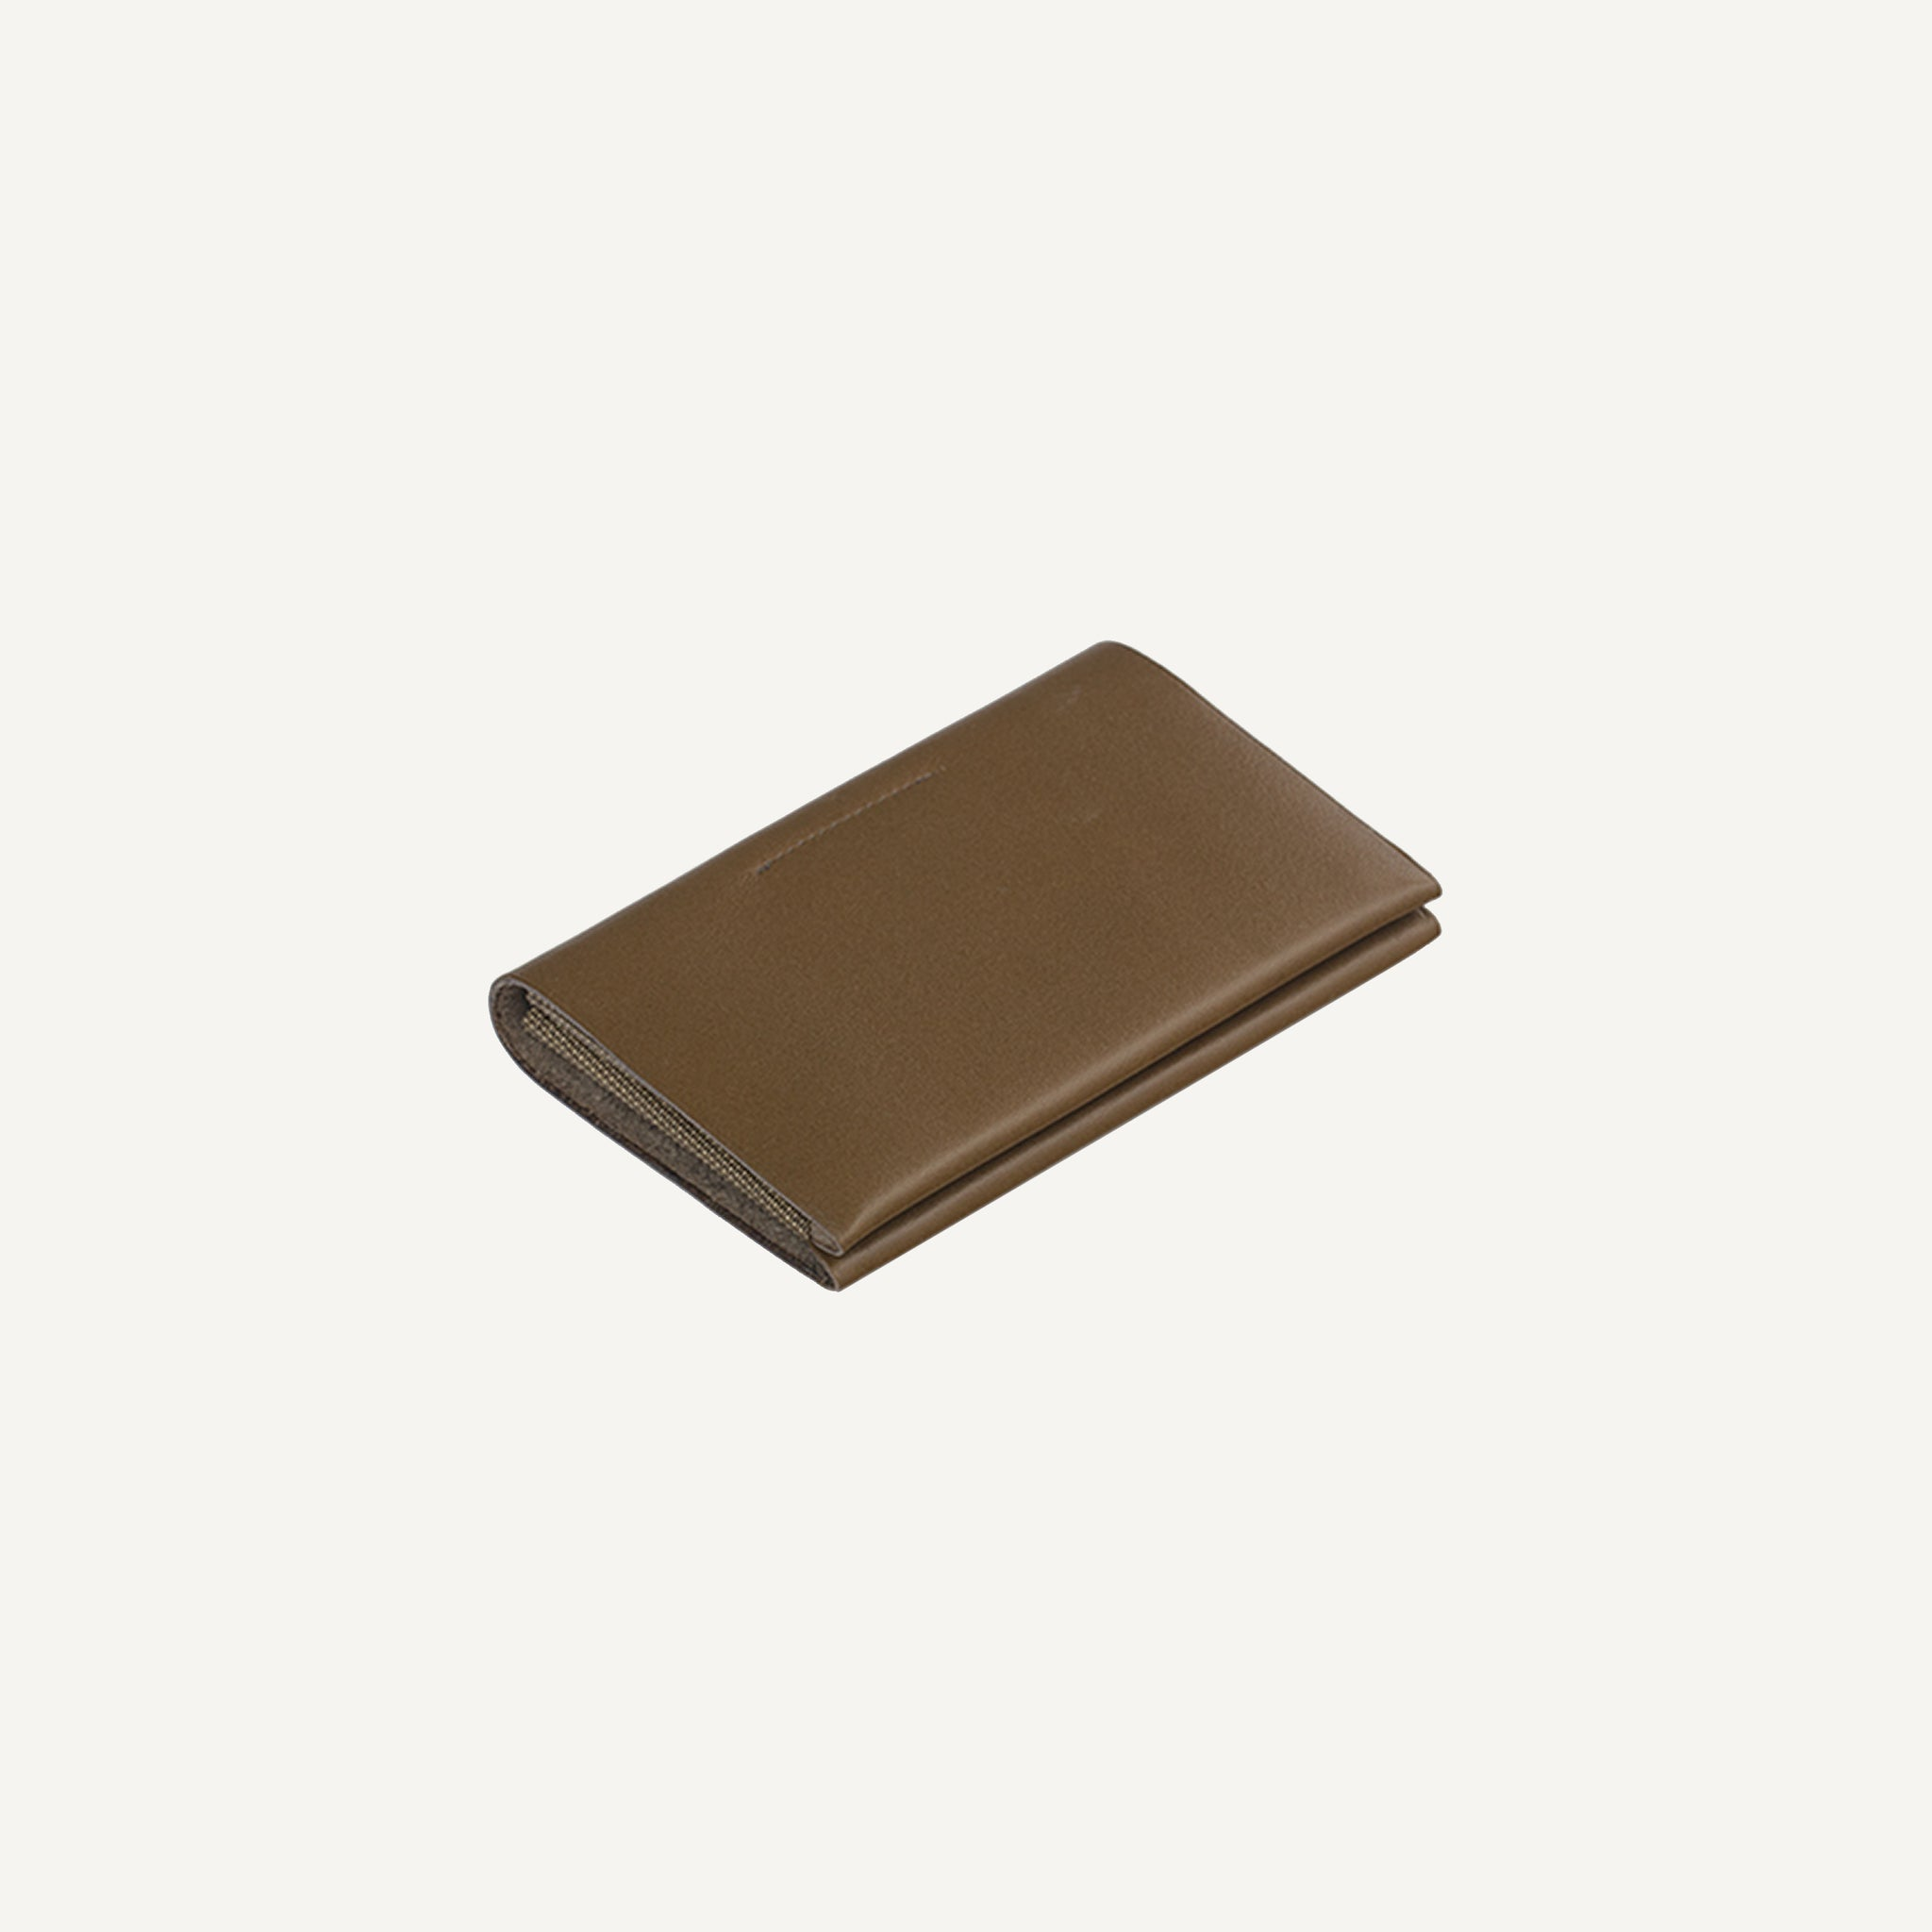 CARD HOLDER BY POSTALCO